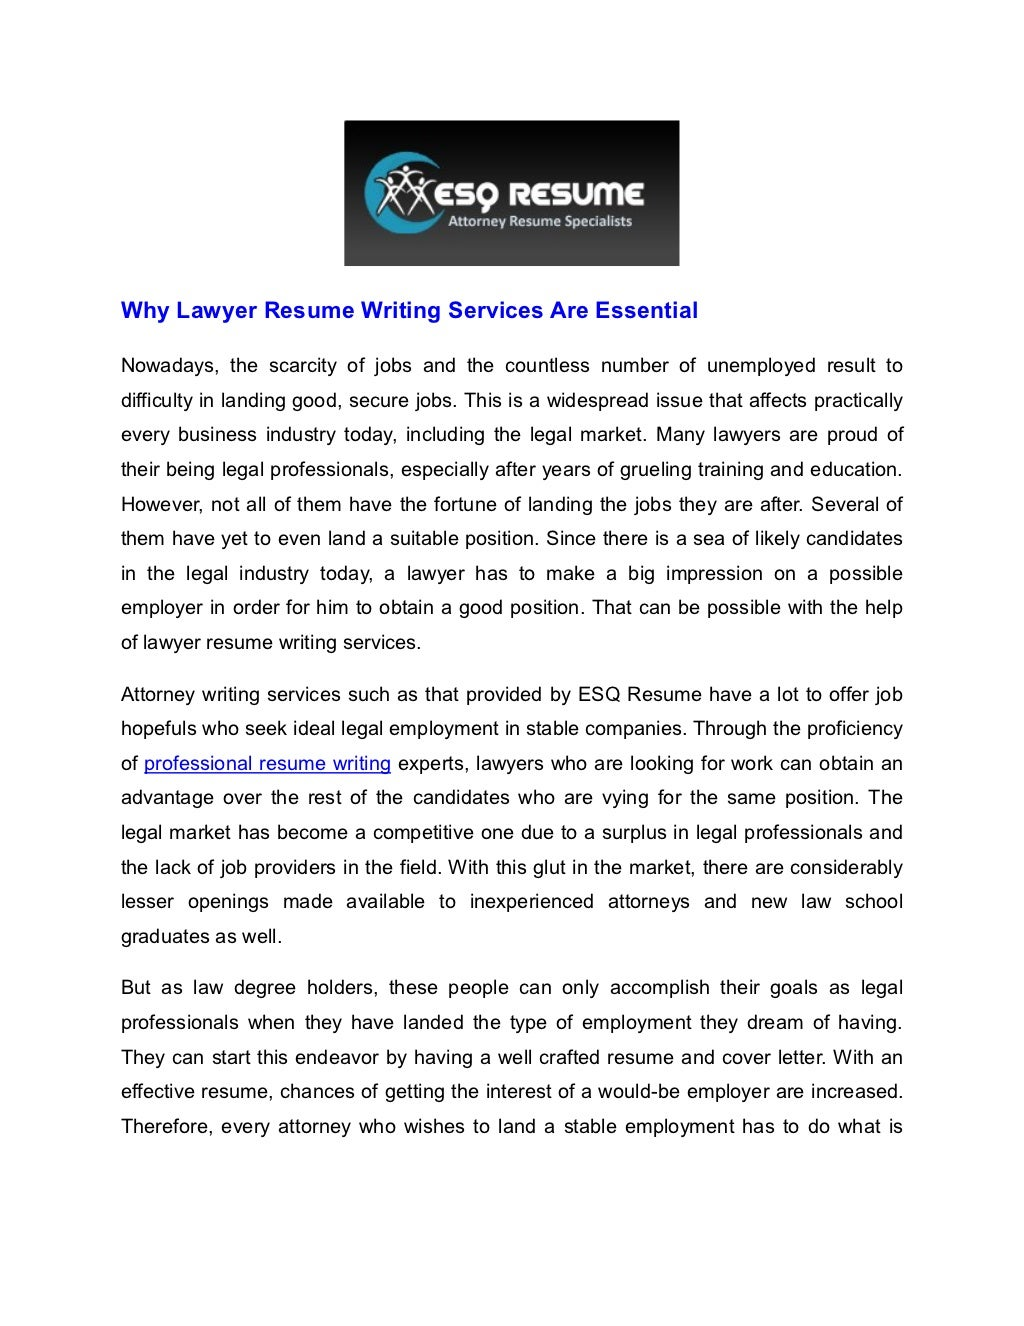 Attorney resume writing services